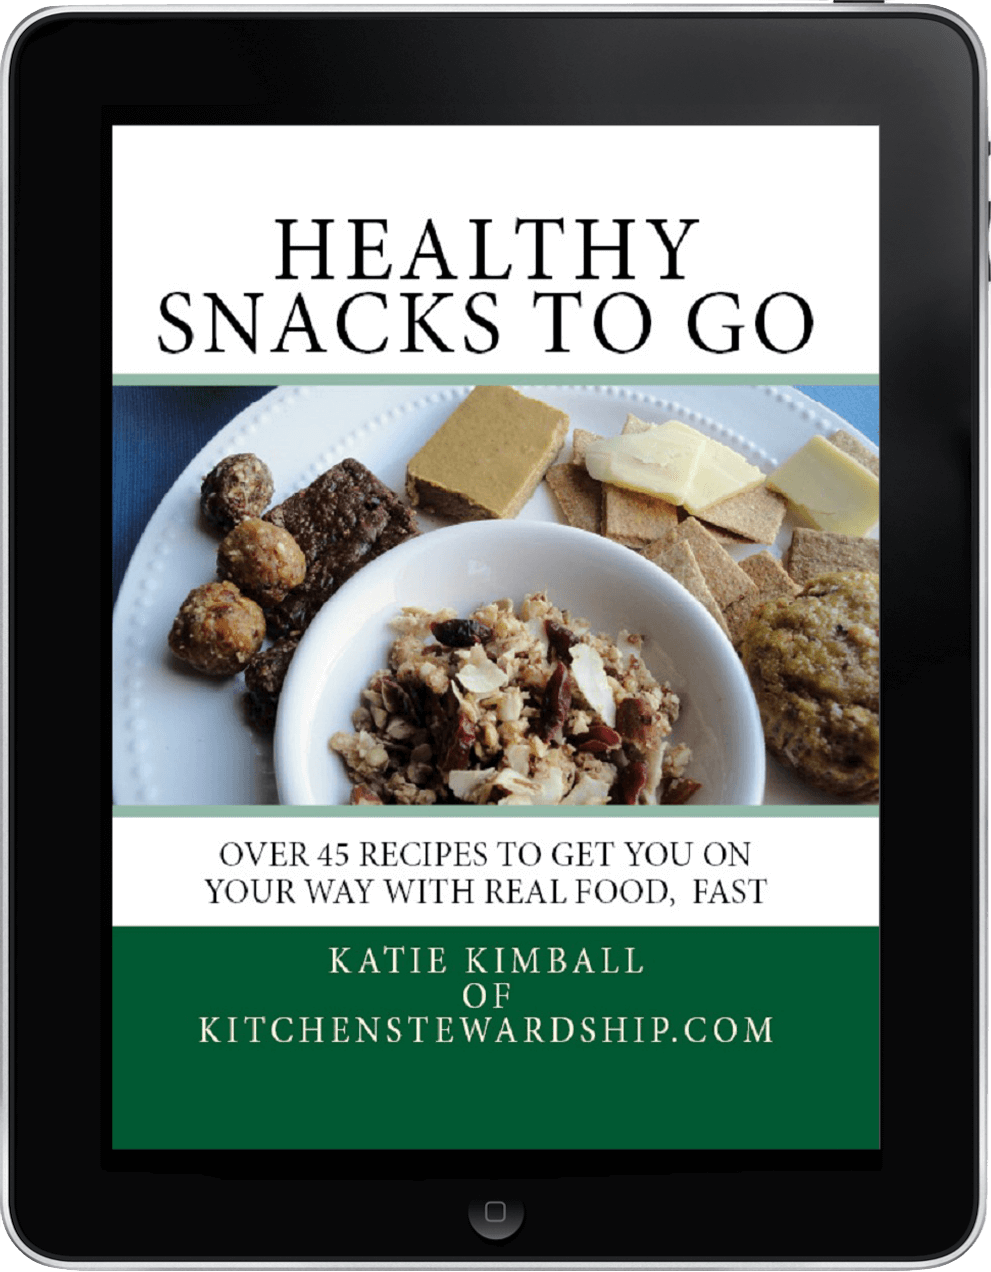 Healthy Snacks To Go on iPad